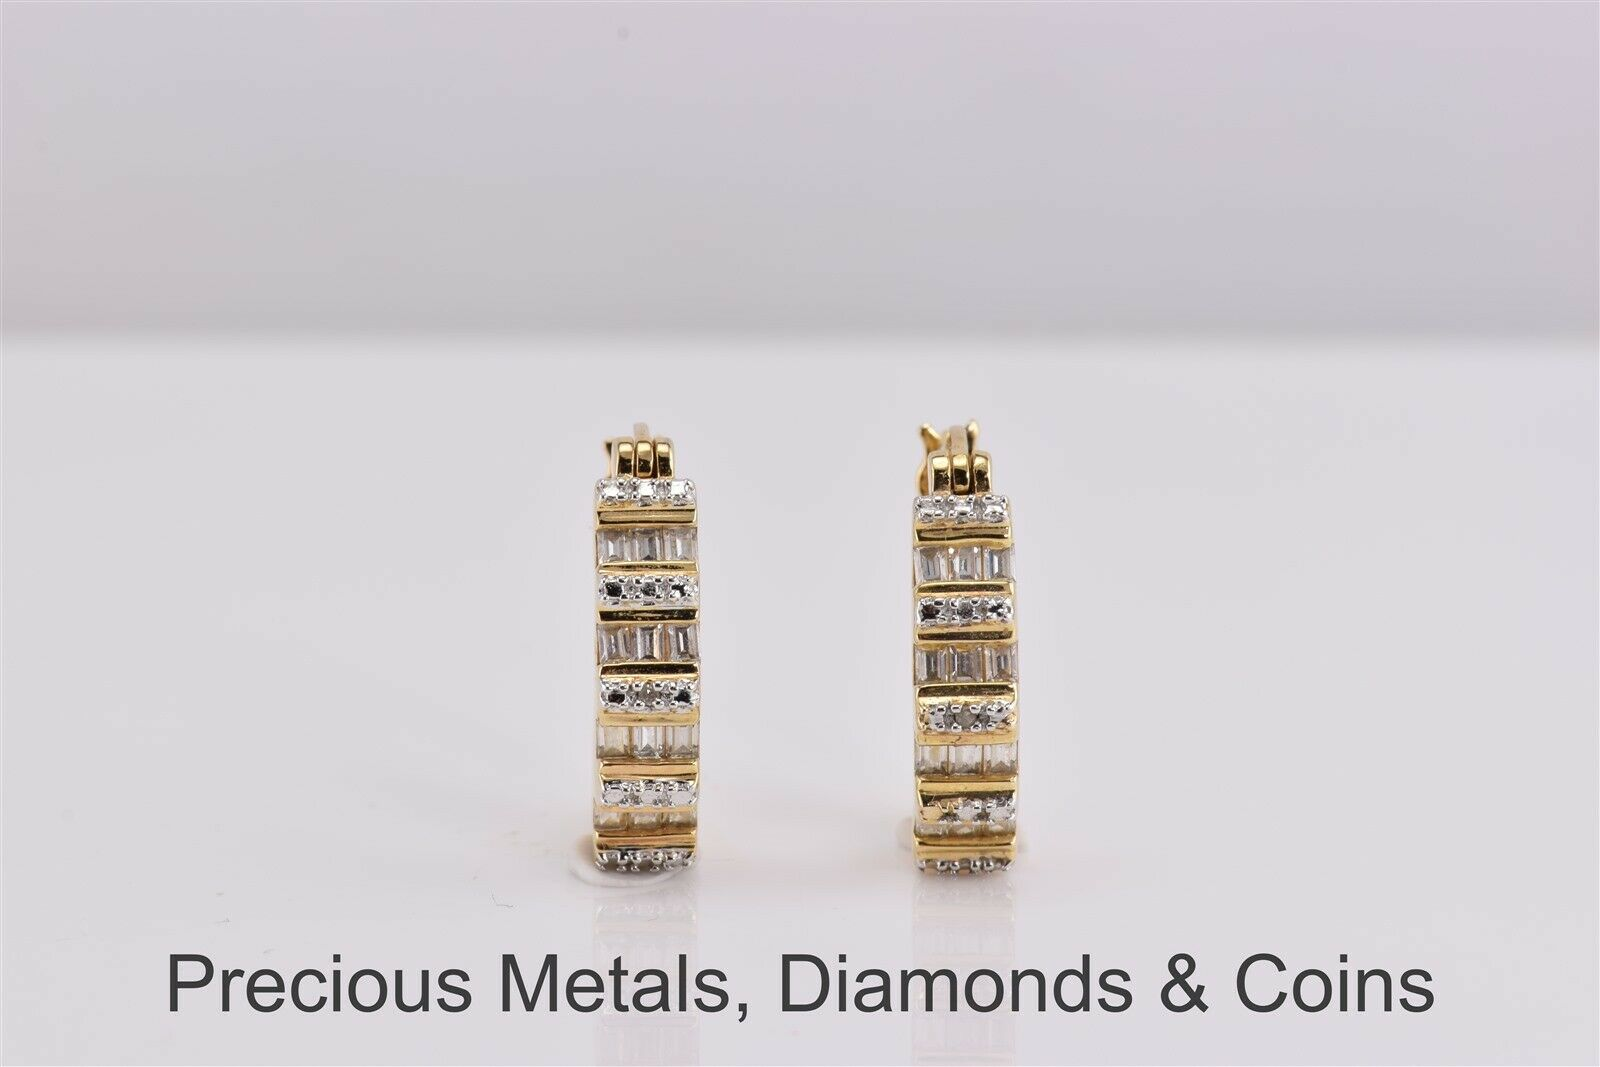 20mm 18k Gold Plated CZ Stone Accented Hoop Earrings,